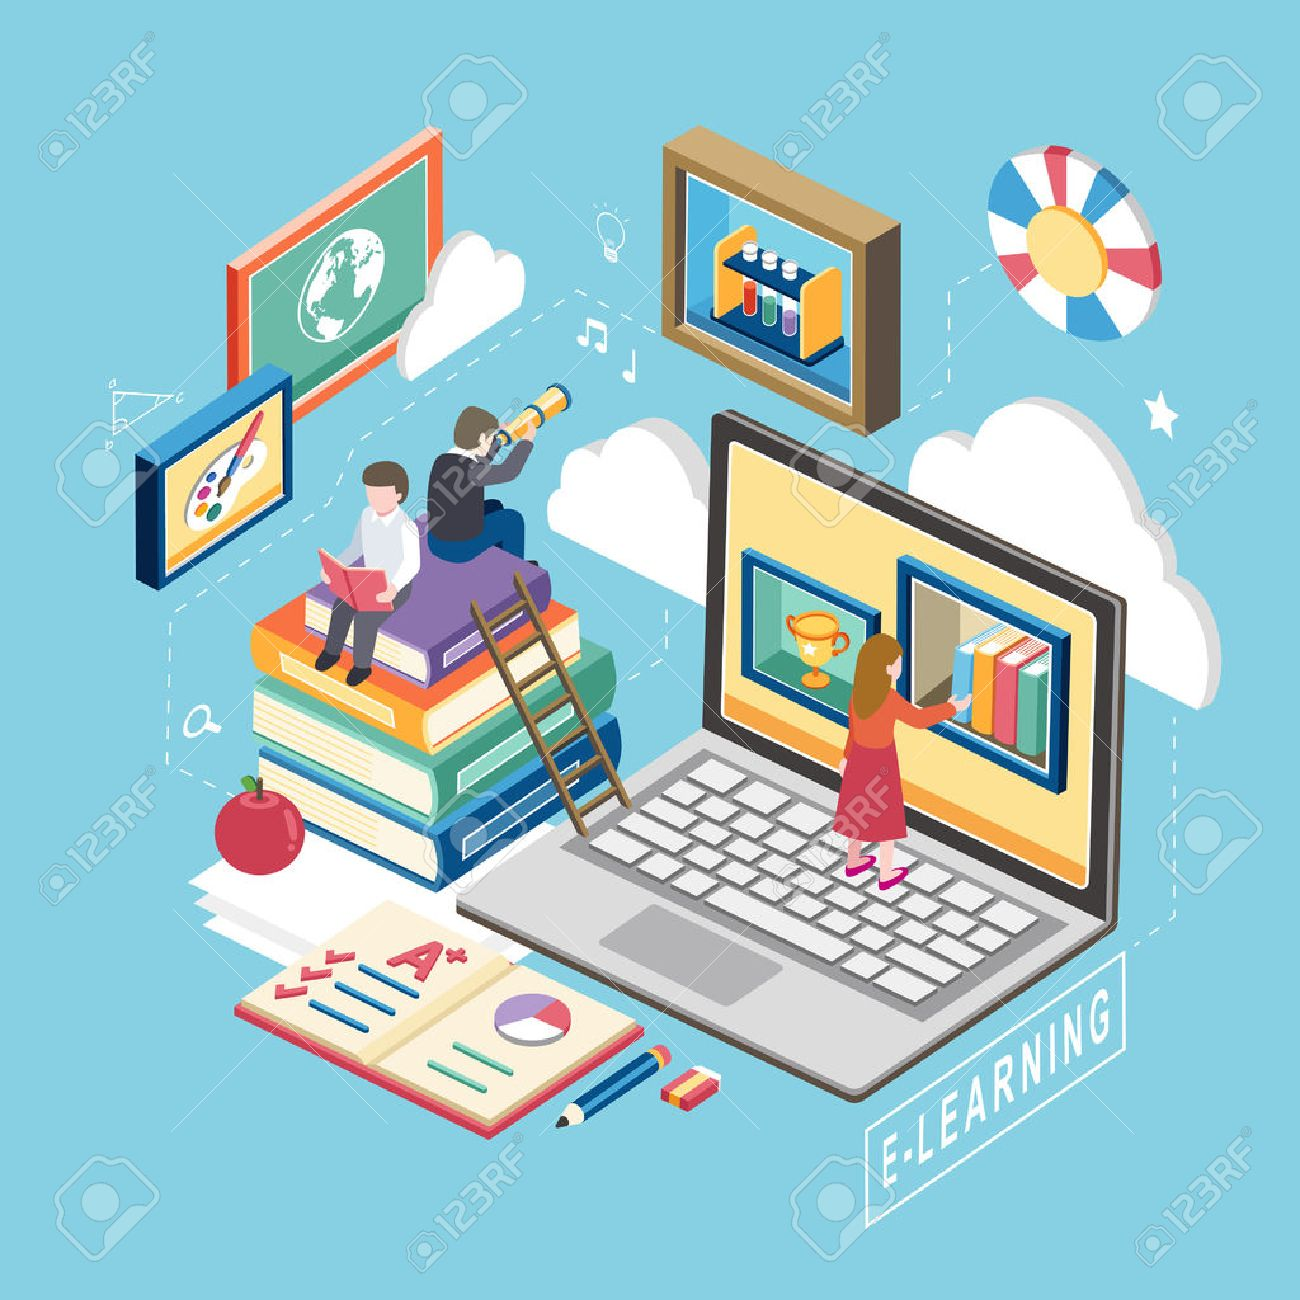 flat 3d isometric design of e-learning concept Stock Vector - 42442562